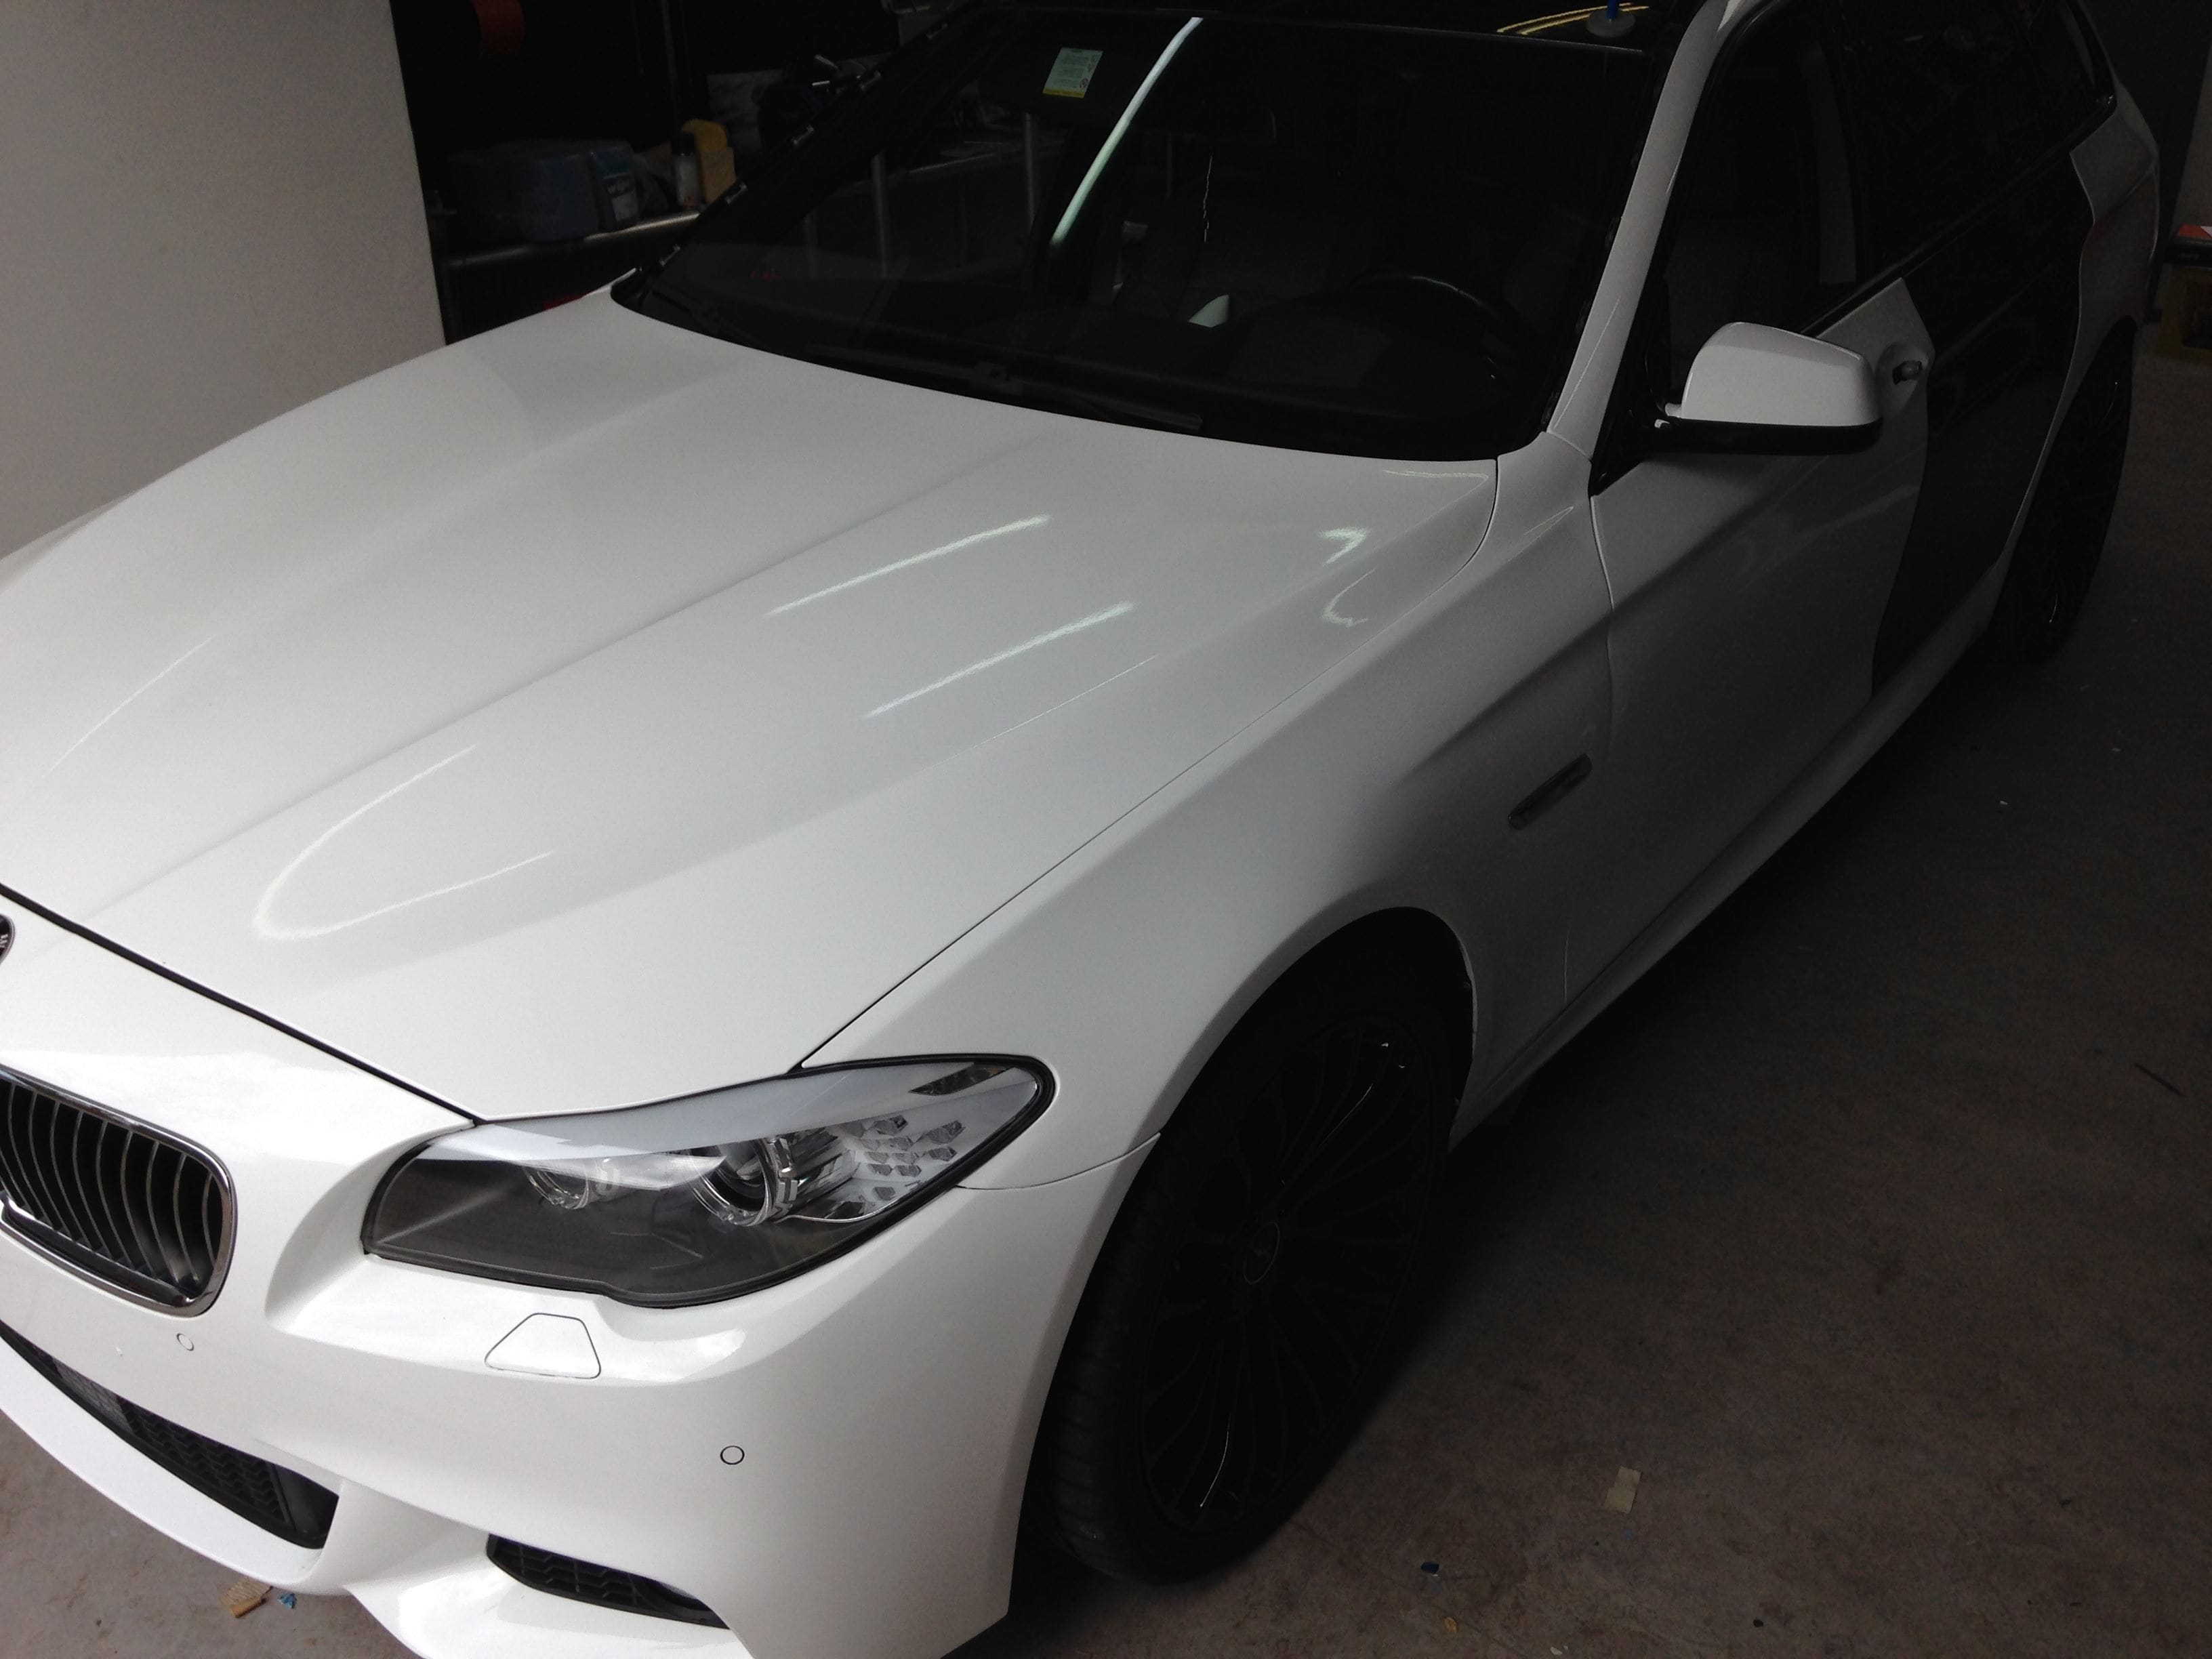 BMW 5 serie in een Full Glossy White Wrap, Carwrapping door Wrapmyride.nu Foto-nr:5247, ©2021